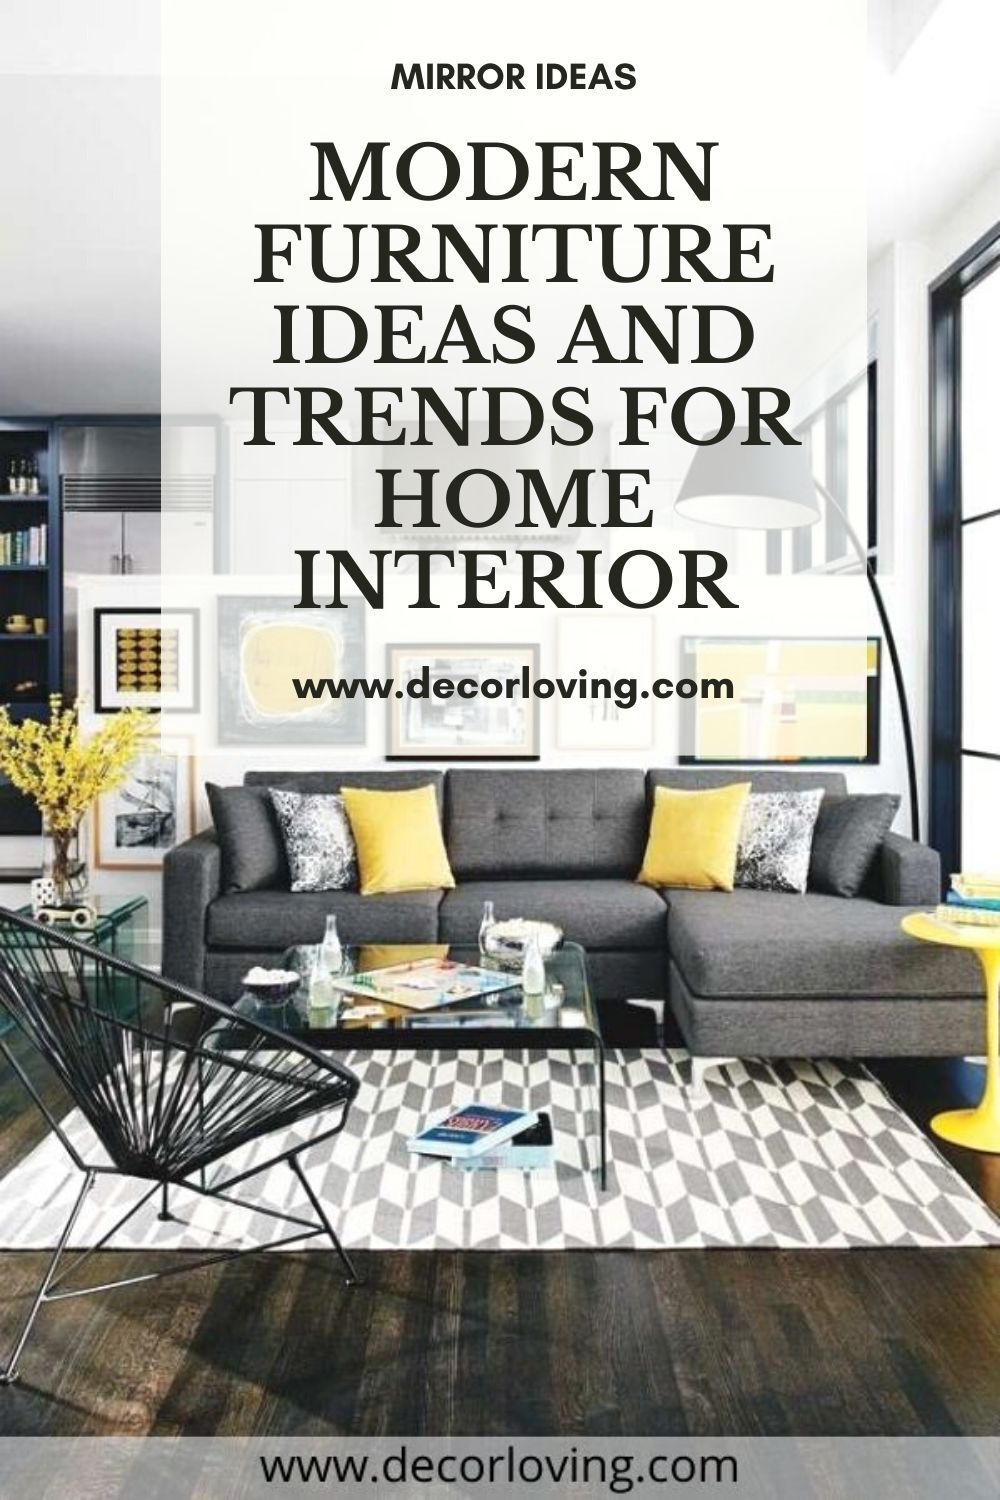 If you want to renovate or want to freshen up, you can achieve a lot with Modern Furniture. Even the smallest furniture can influence the overall atmosphere.  #ModernFurniture #HomeInterior #FurnitureIdeas #InteriorDesign #FurnitureDesign